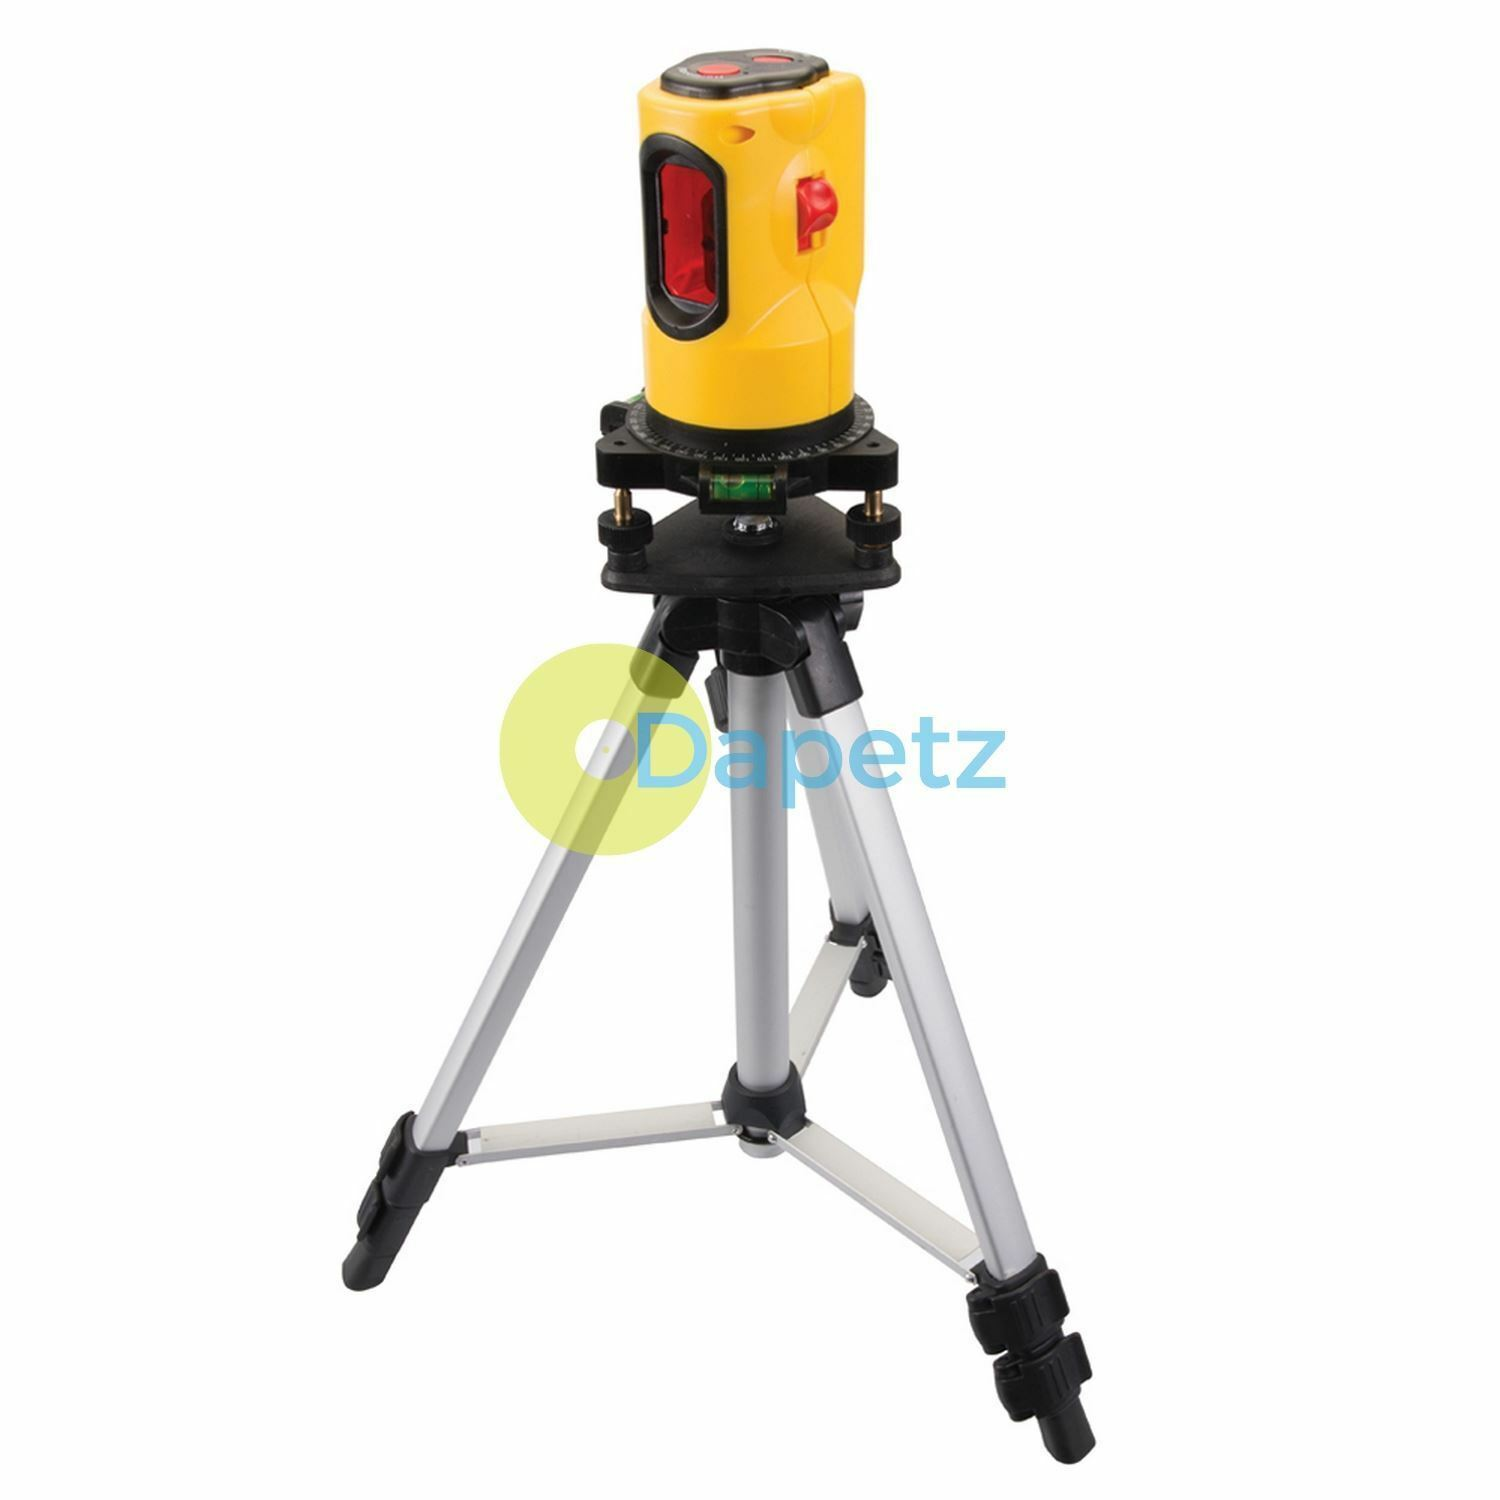 Self Levelling Laser Level Kit 10M Range rotates 360° Grünically horizontally